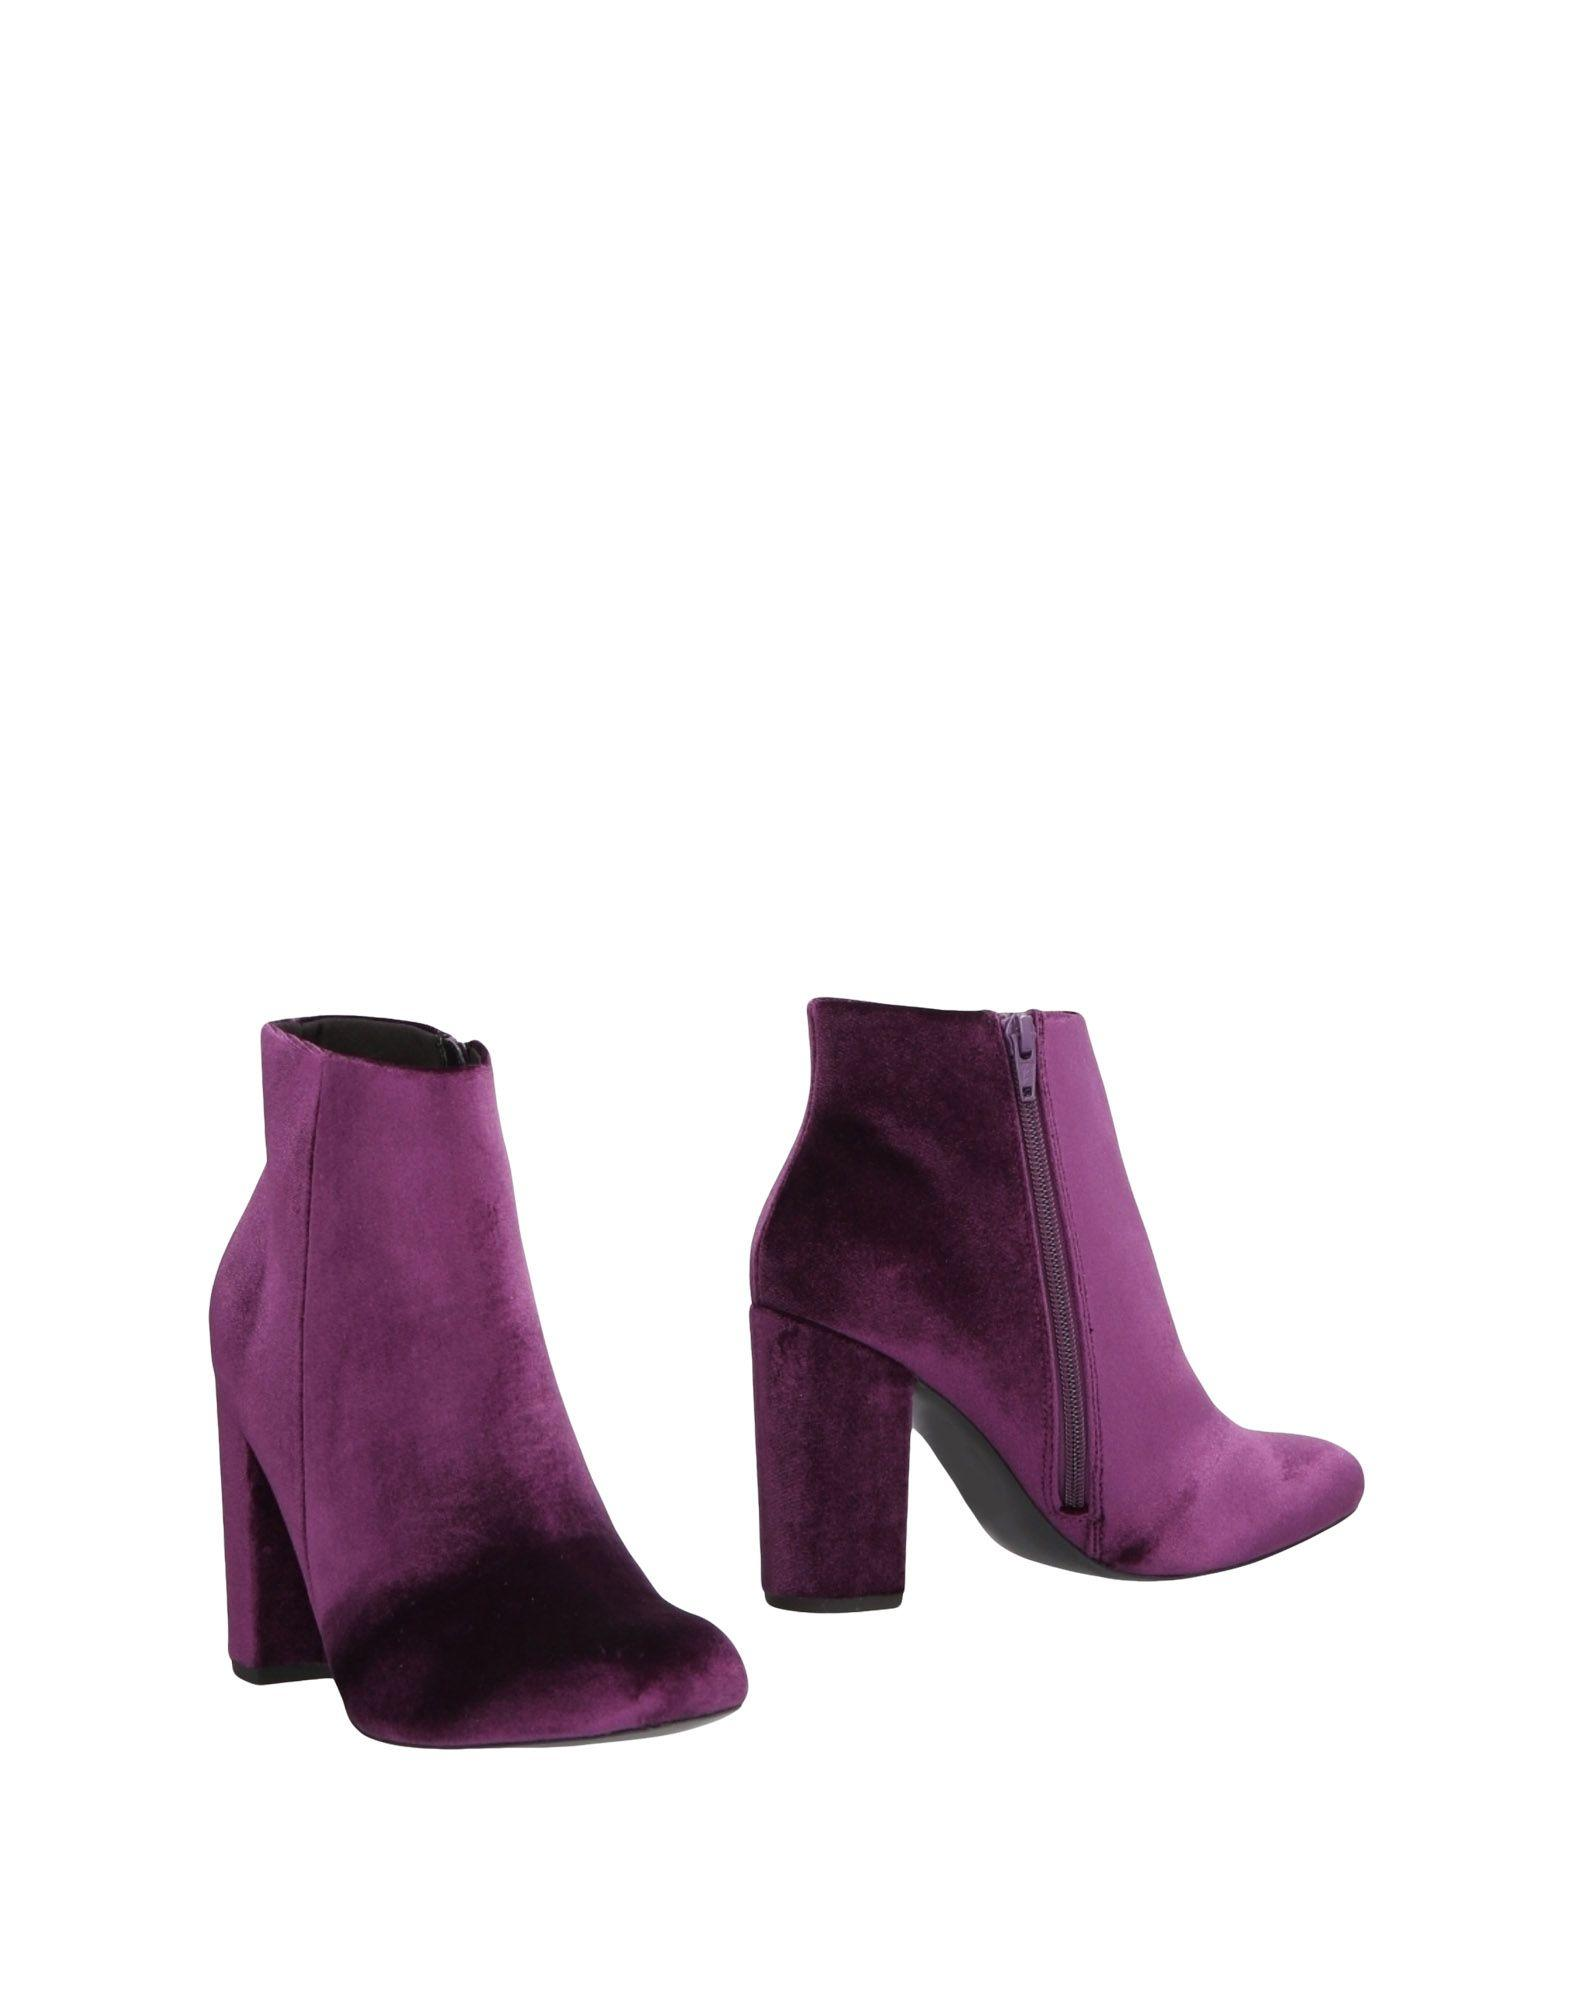 506ffbb35c7 Steve Madden Ankle Boots In Purple